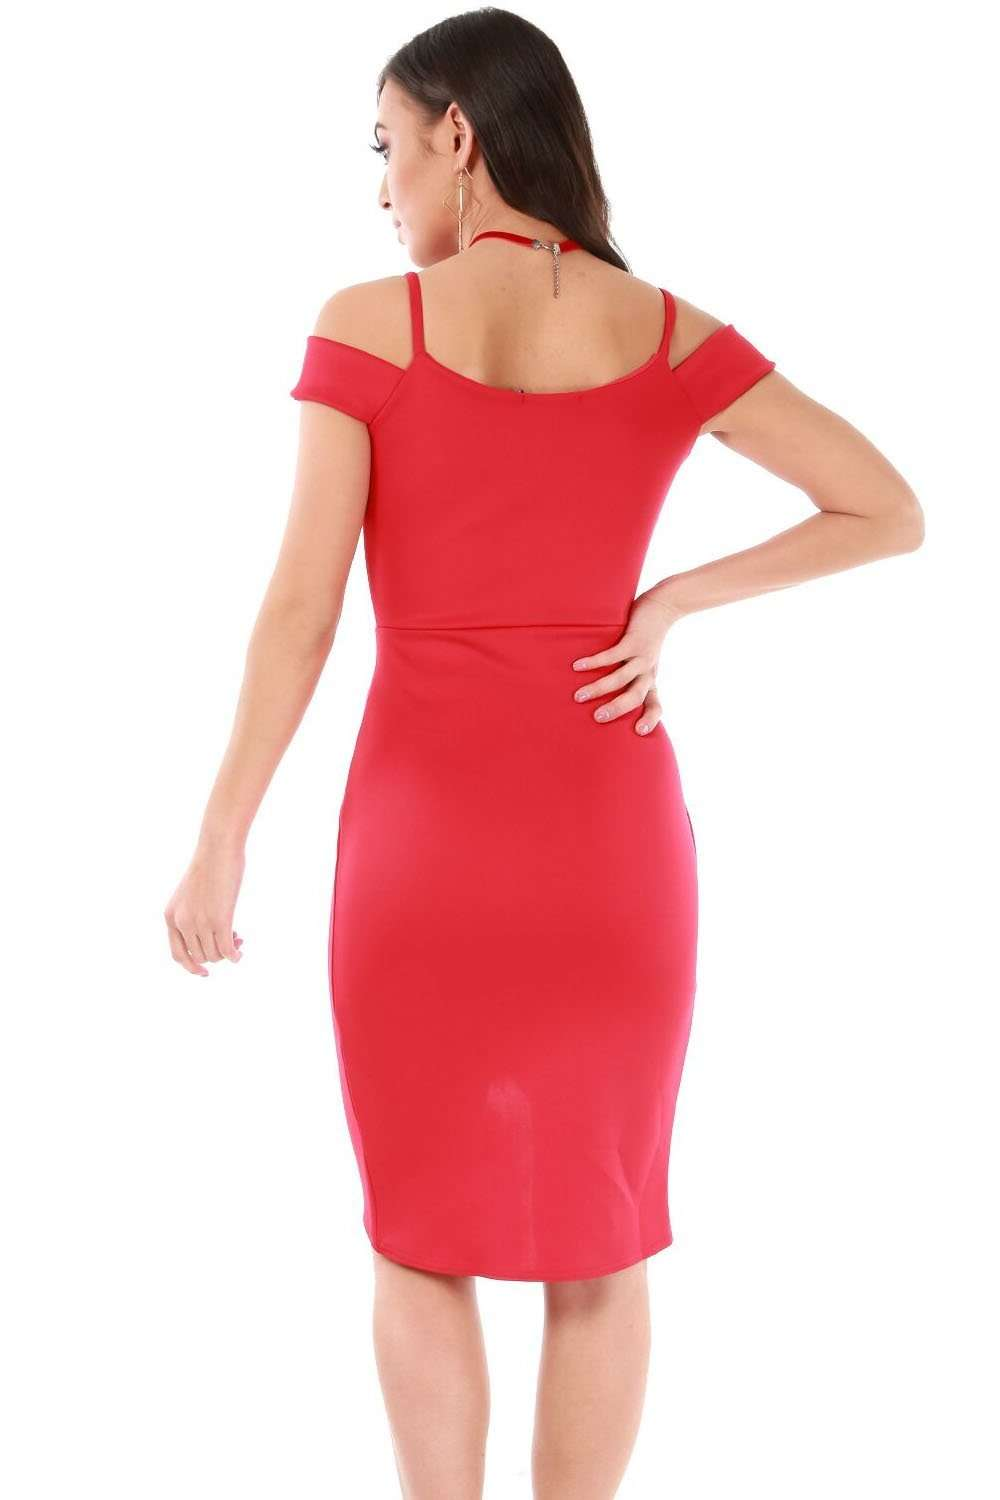 Red Bardot Strappy Wrap Bodycon Mini Dress - bejealous-com